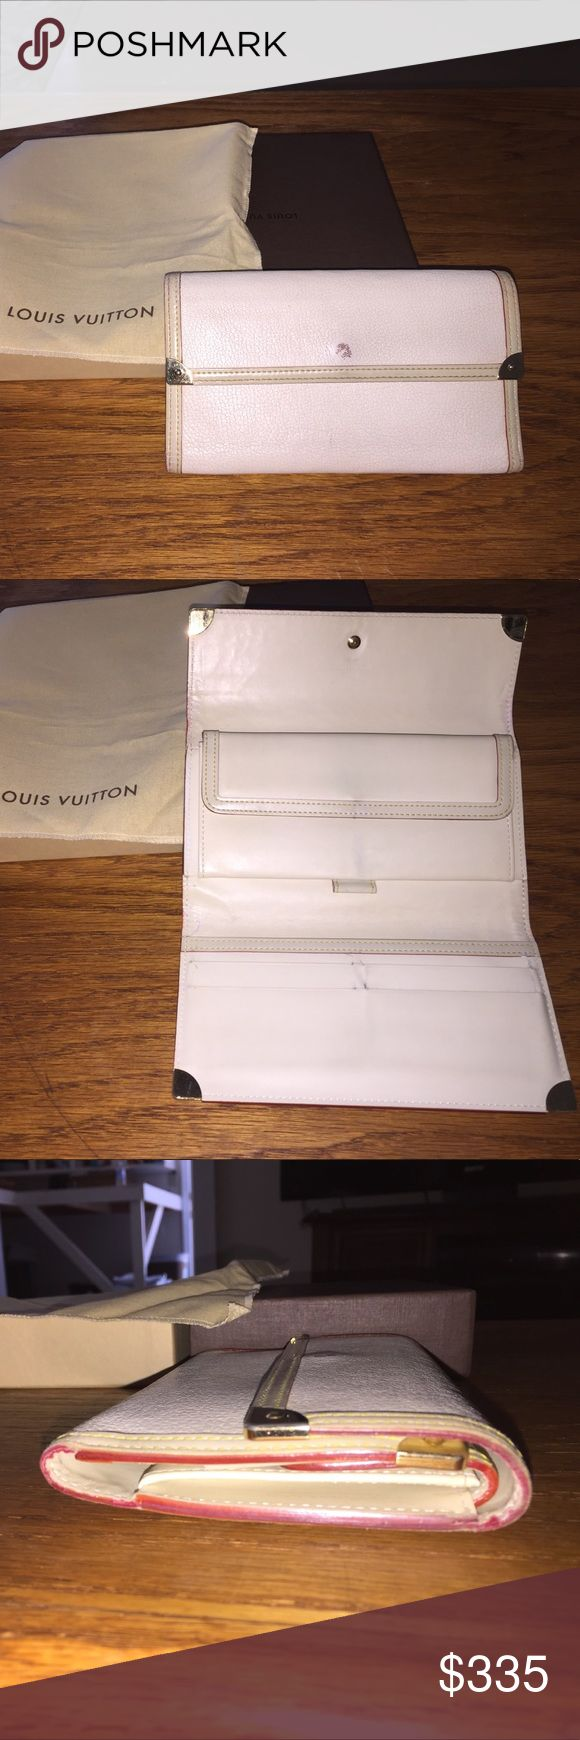 New listing📛🌶⛑Authentic Louis Vuitton wallet White authentic Louis Vuitton wallet very minor wear with box and bag very good condition Louis Vuitton Bags Wallets